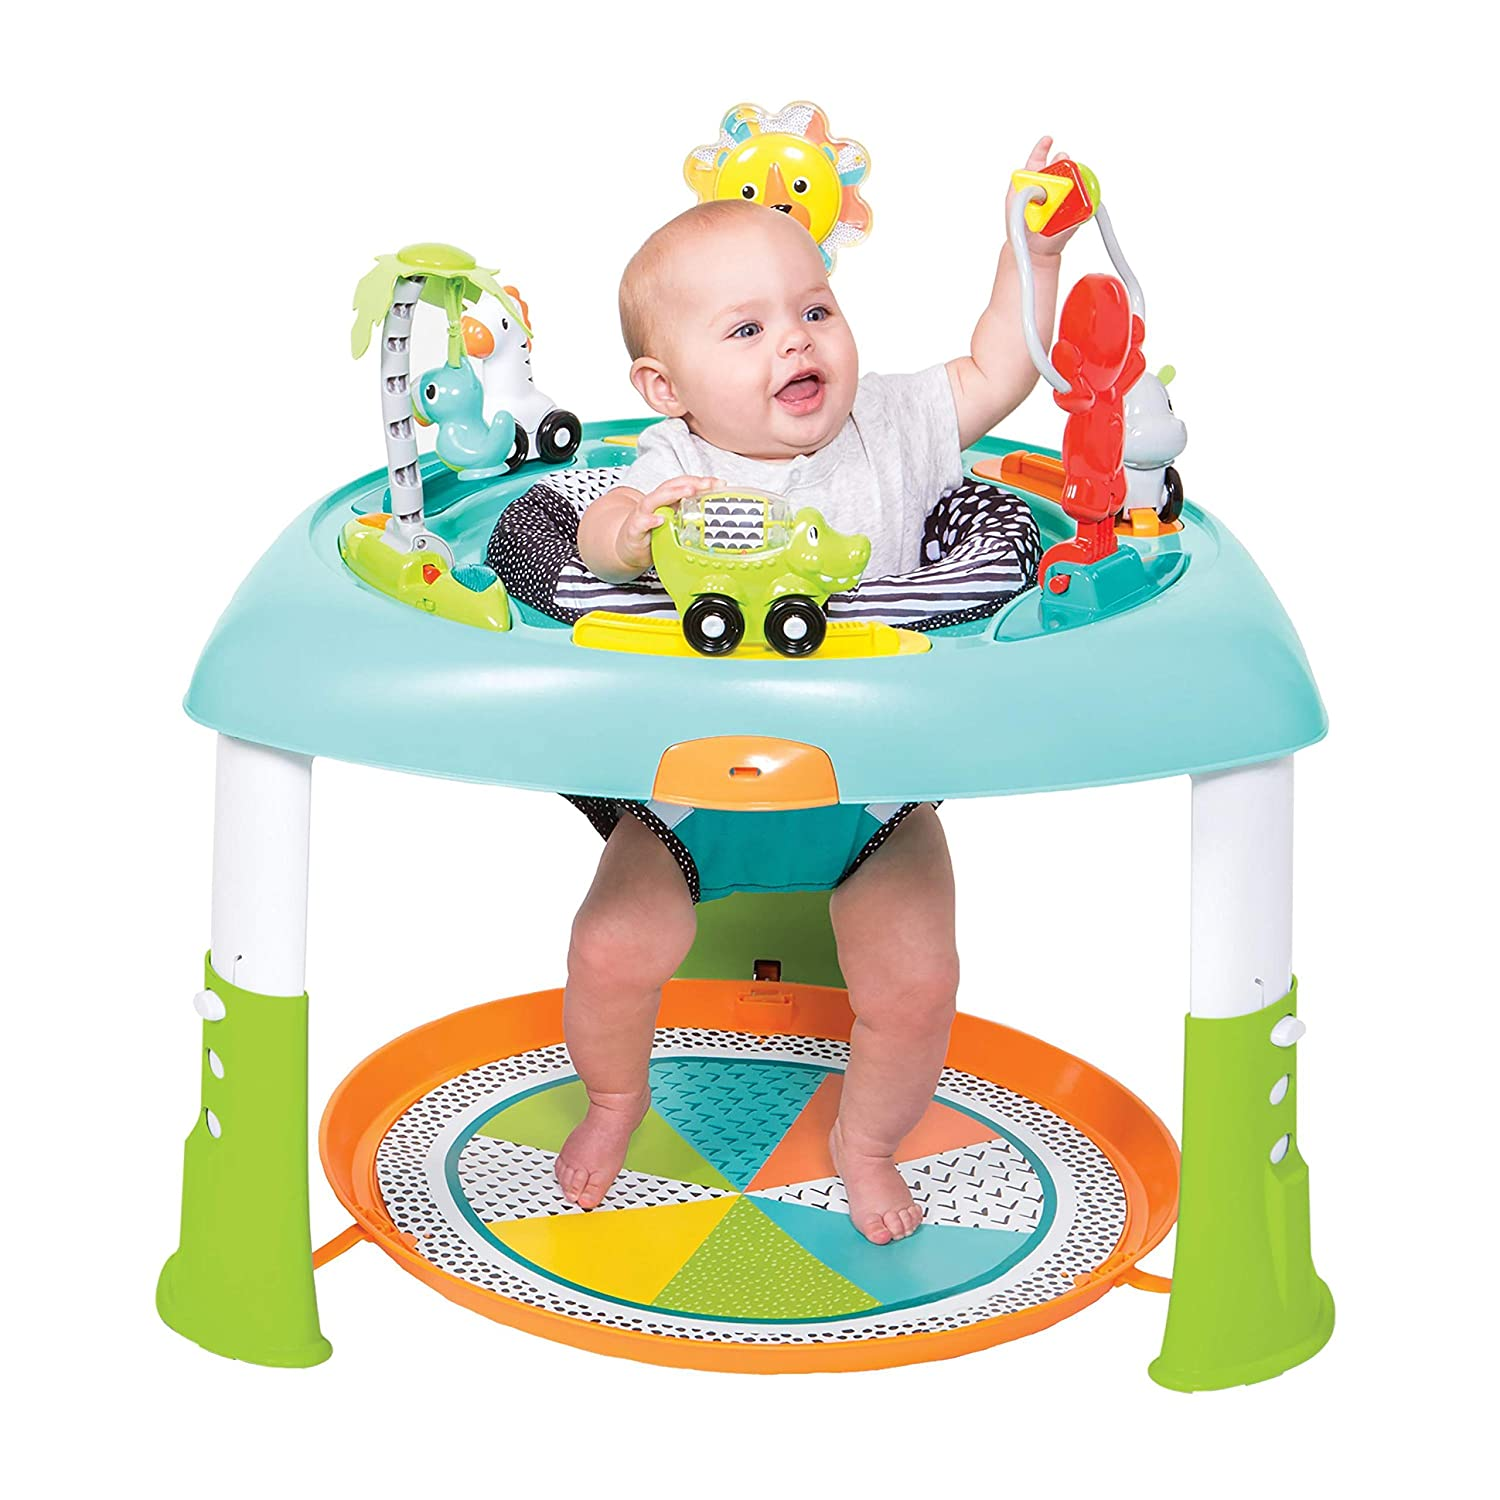 Baby Gear Activity Centers Lower Price with Evenflo Life In The Amazon Exersaucer Upper Leg W/ Ring Replacement Part Grade Products According To Quality